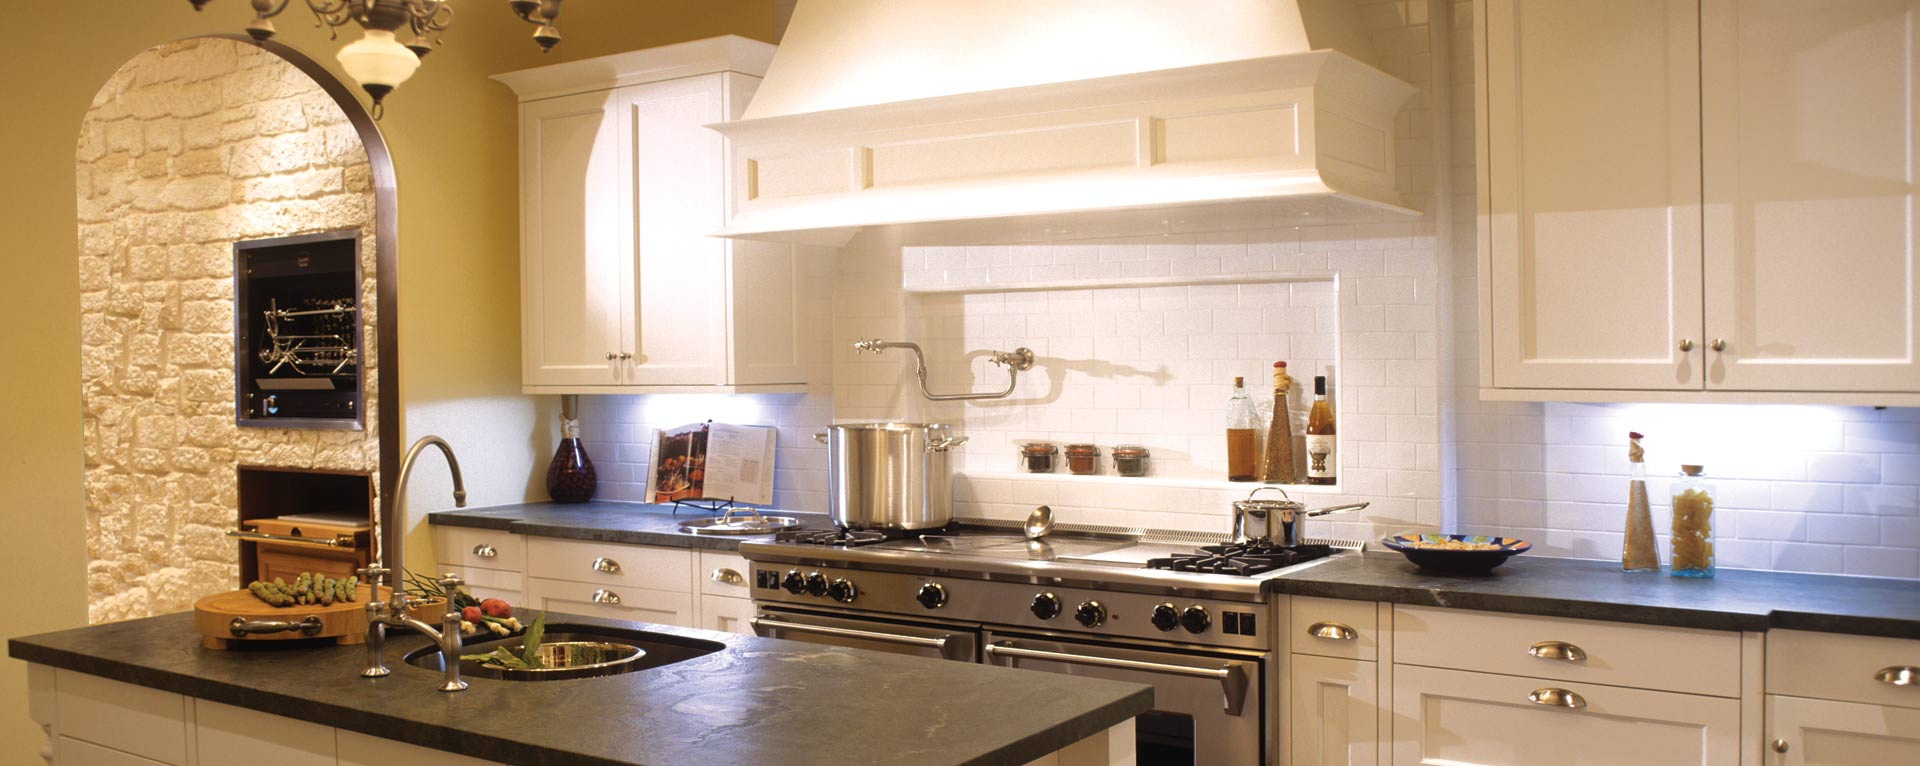 Home artcraft kitchens for Kitchen pics